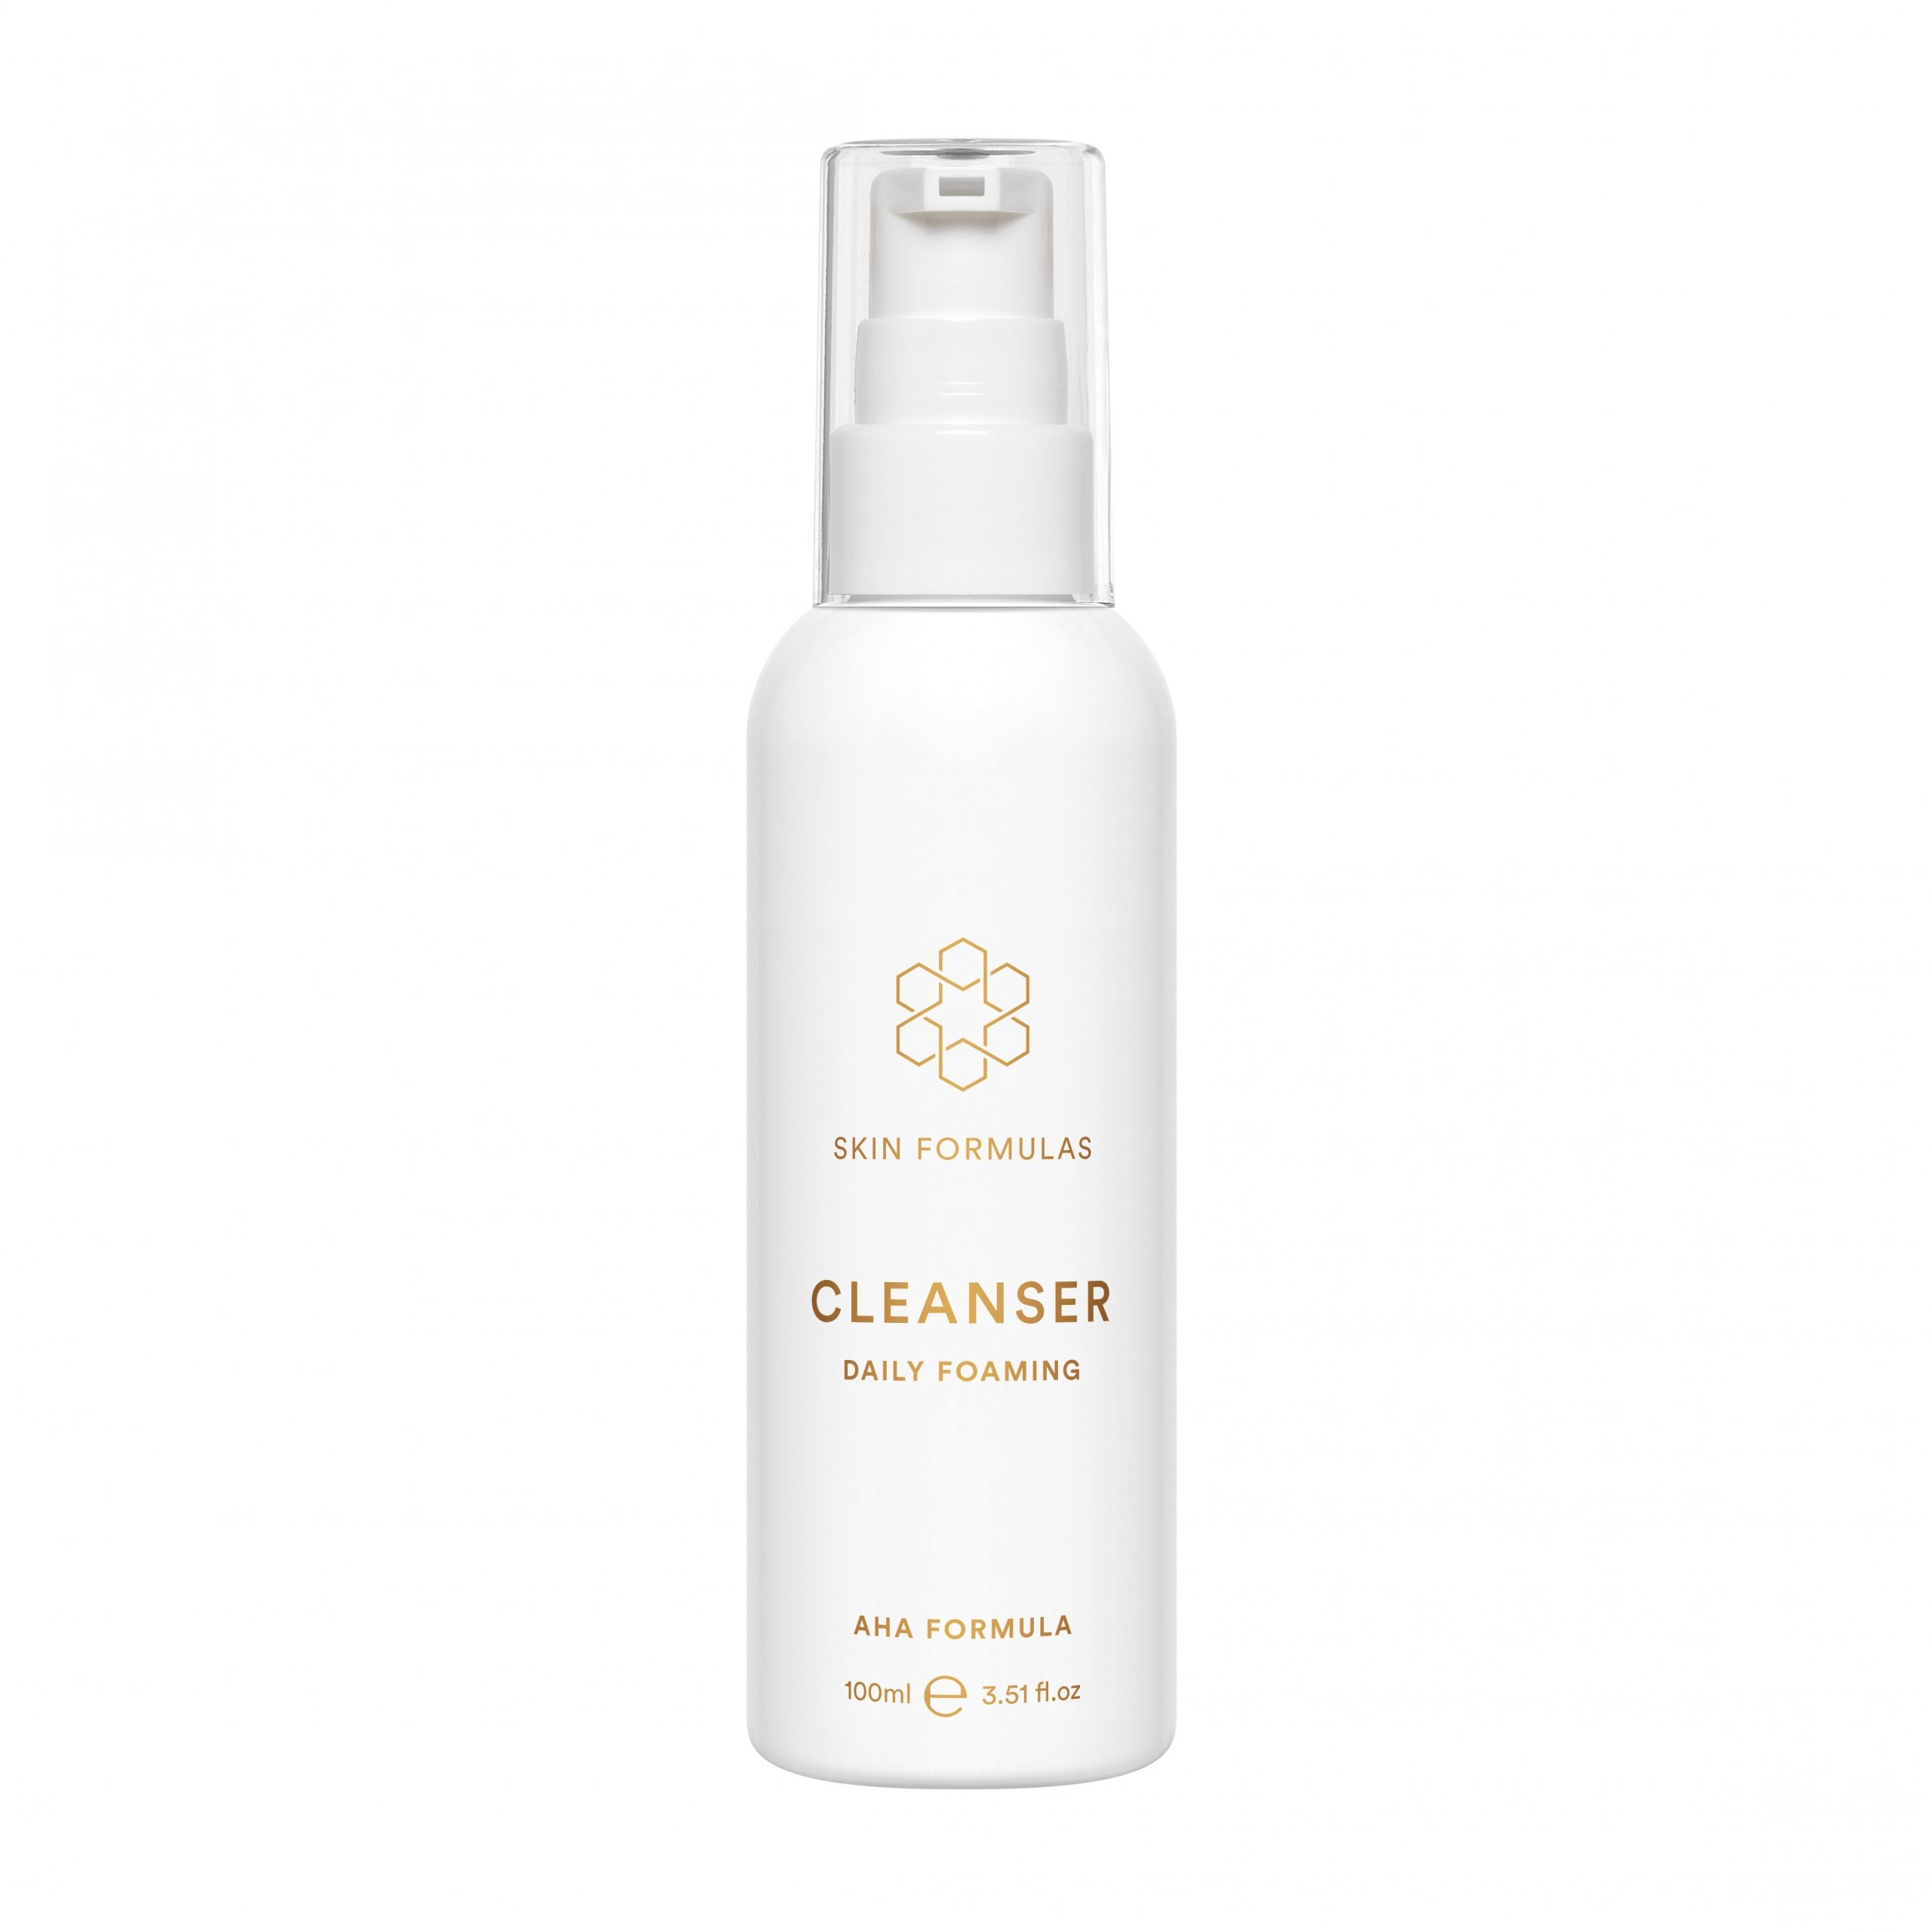 Skin Formulas Cleanser Daily Foaming - Face Aesthetic Clinic